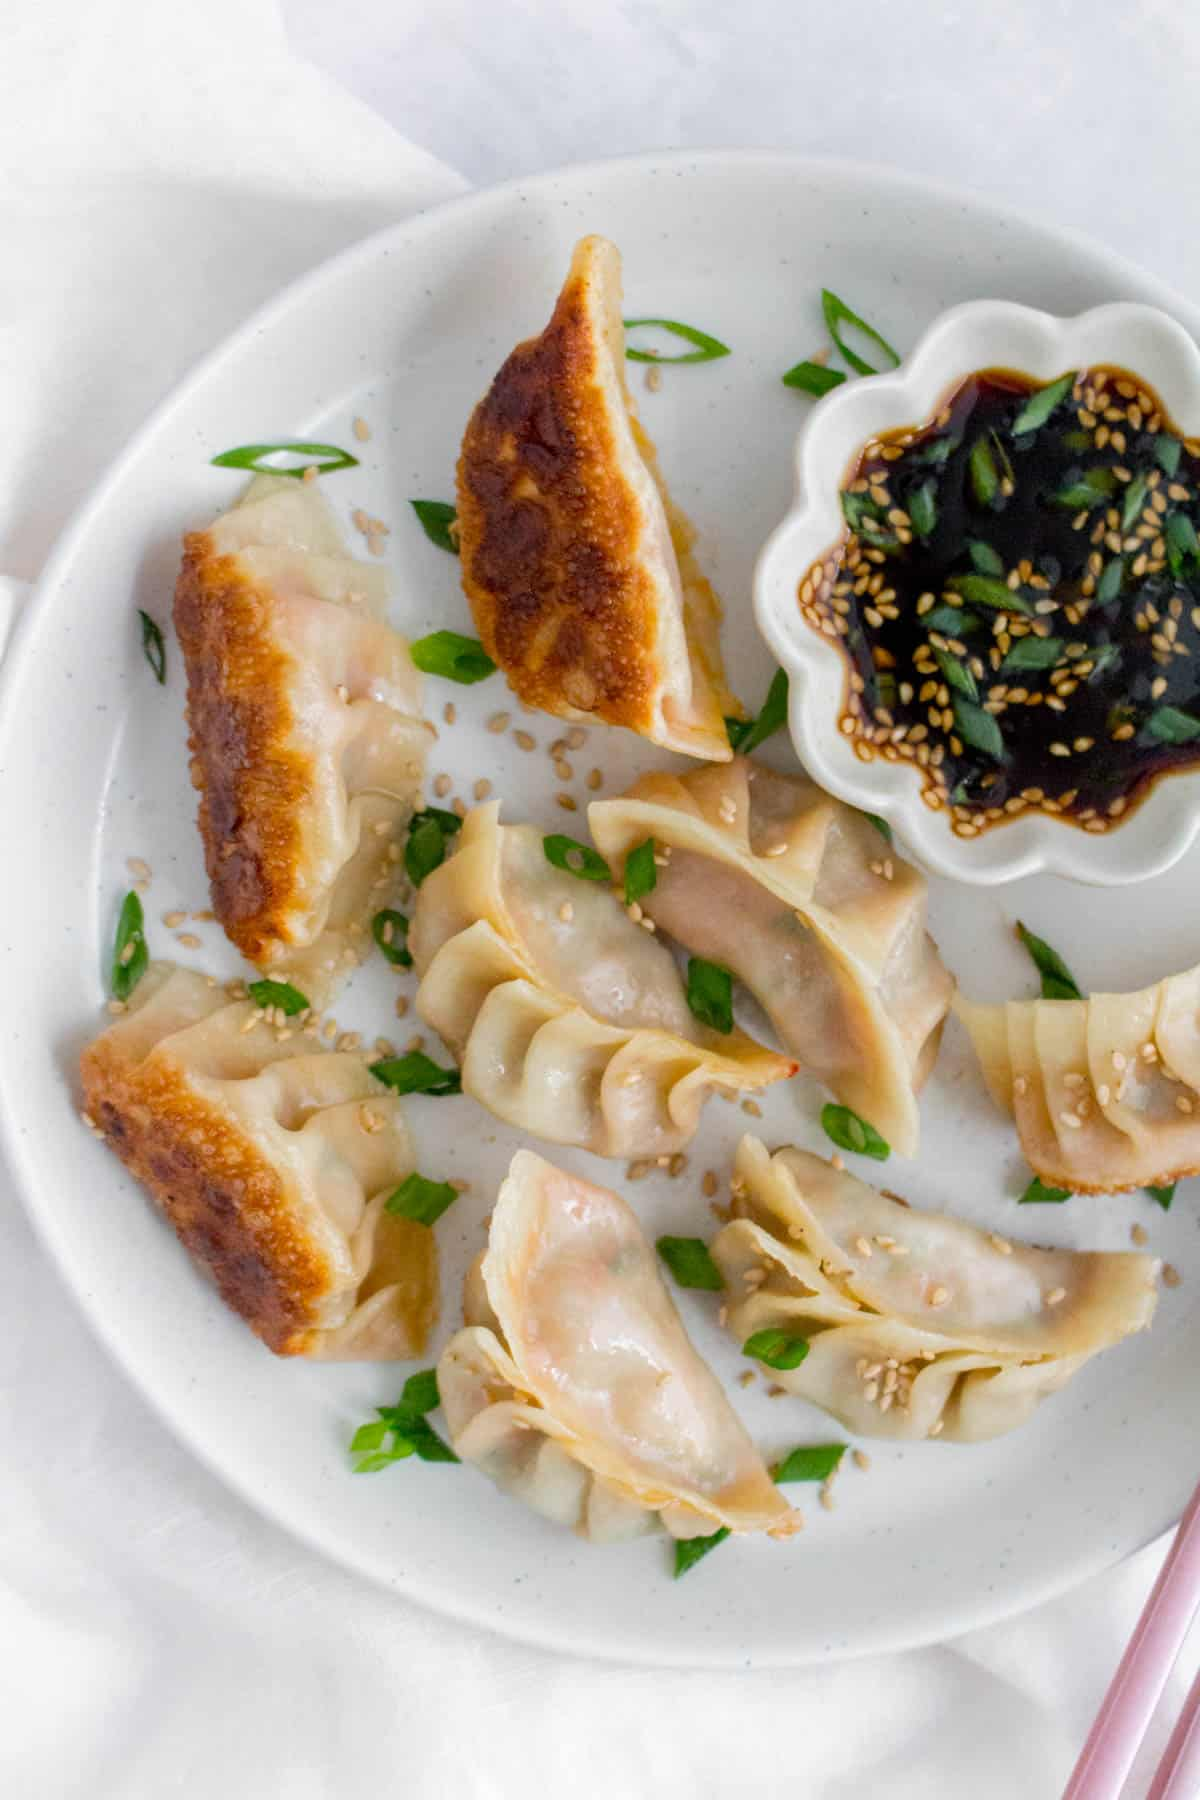 Close up of multiple pork dumplings on a plate with sesame seeds and green onion garnish.